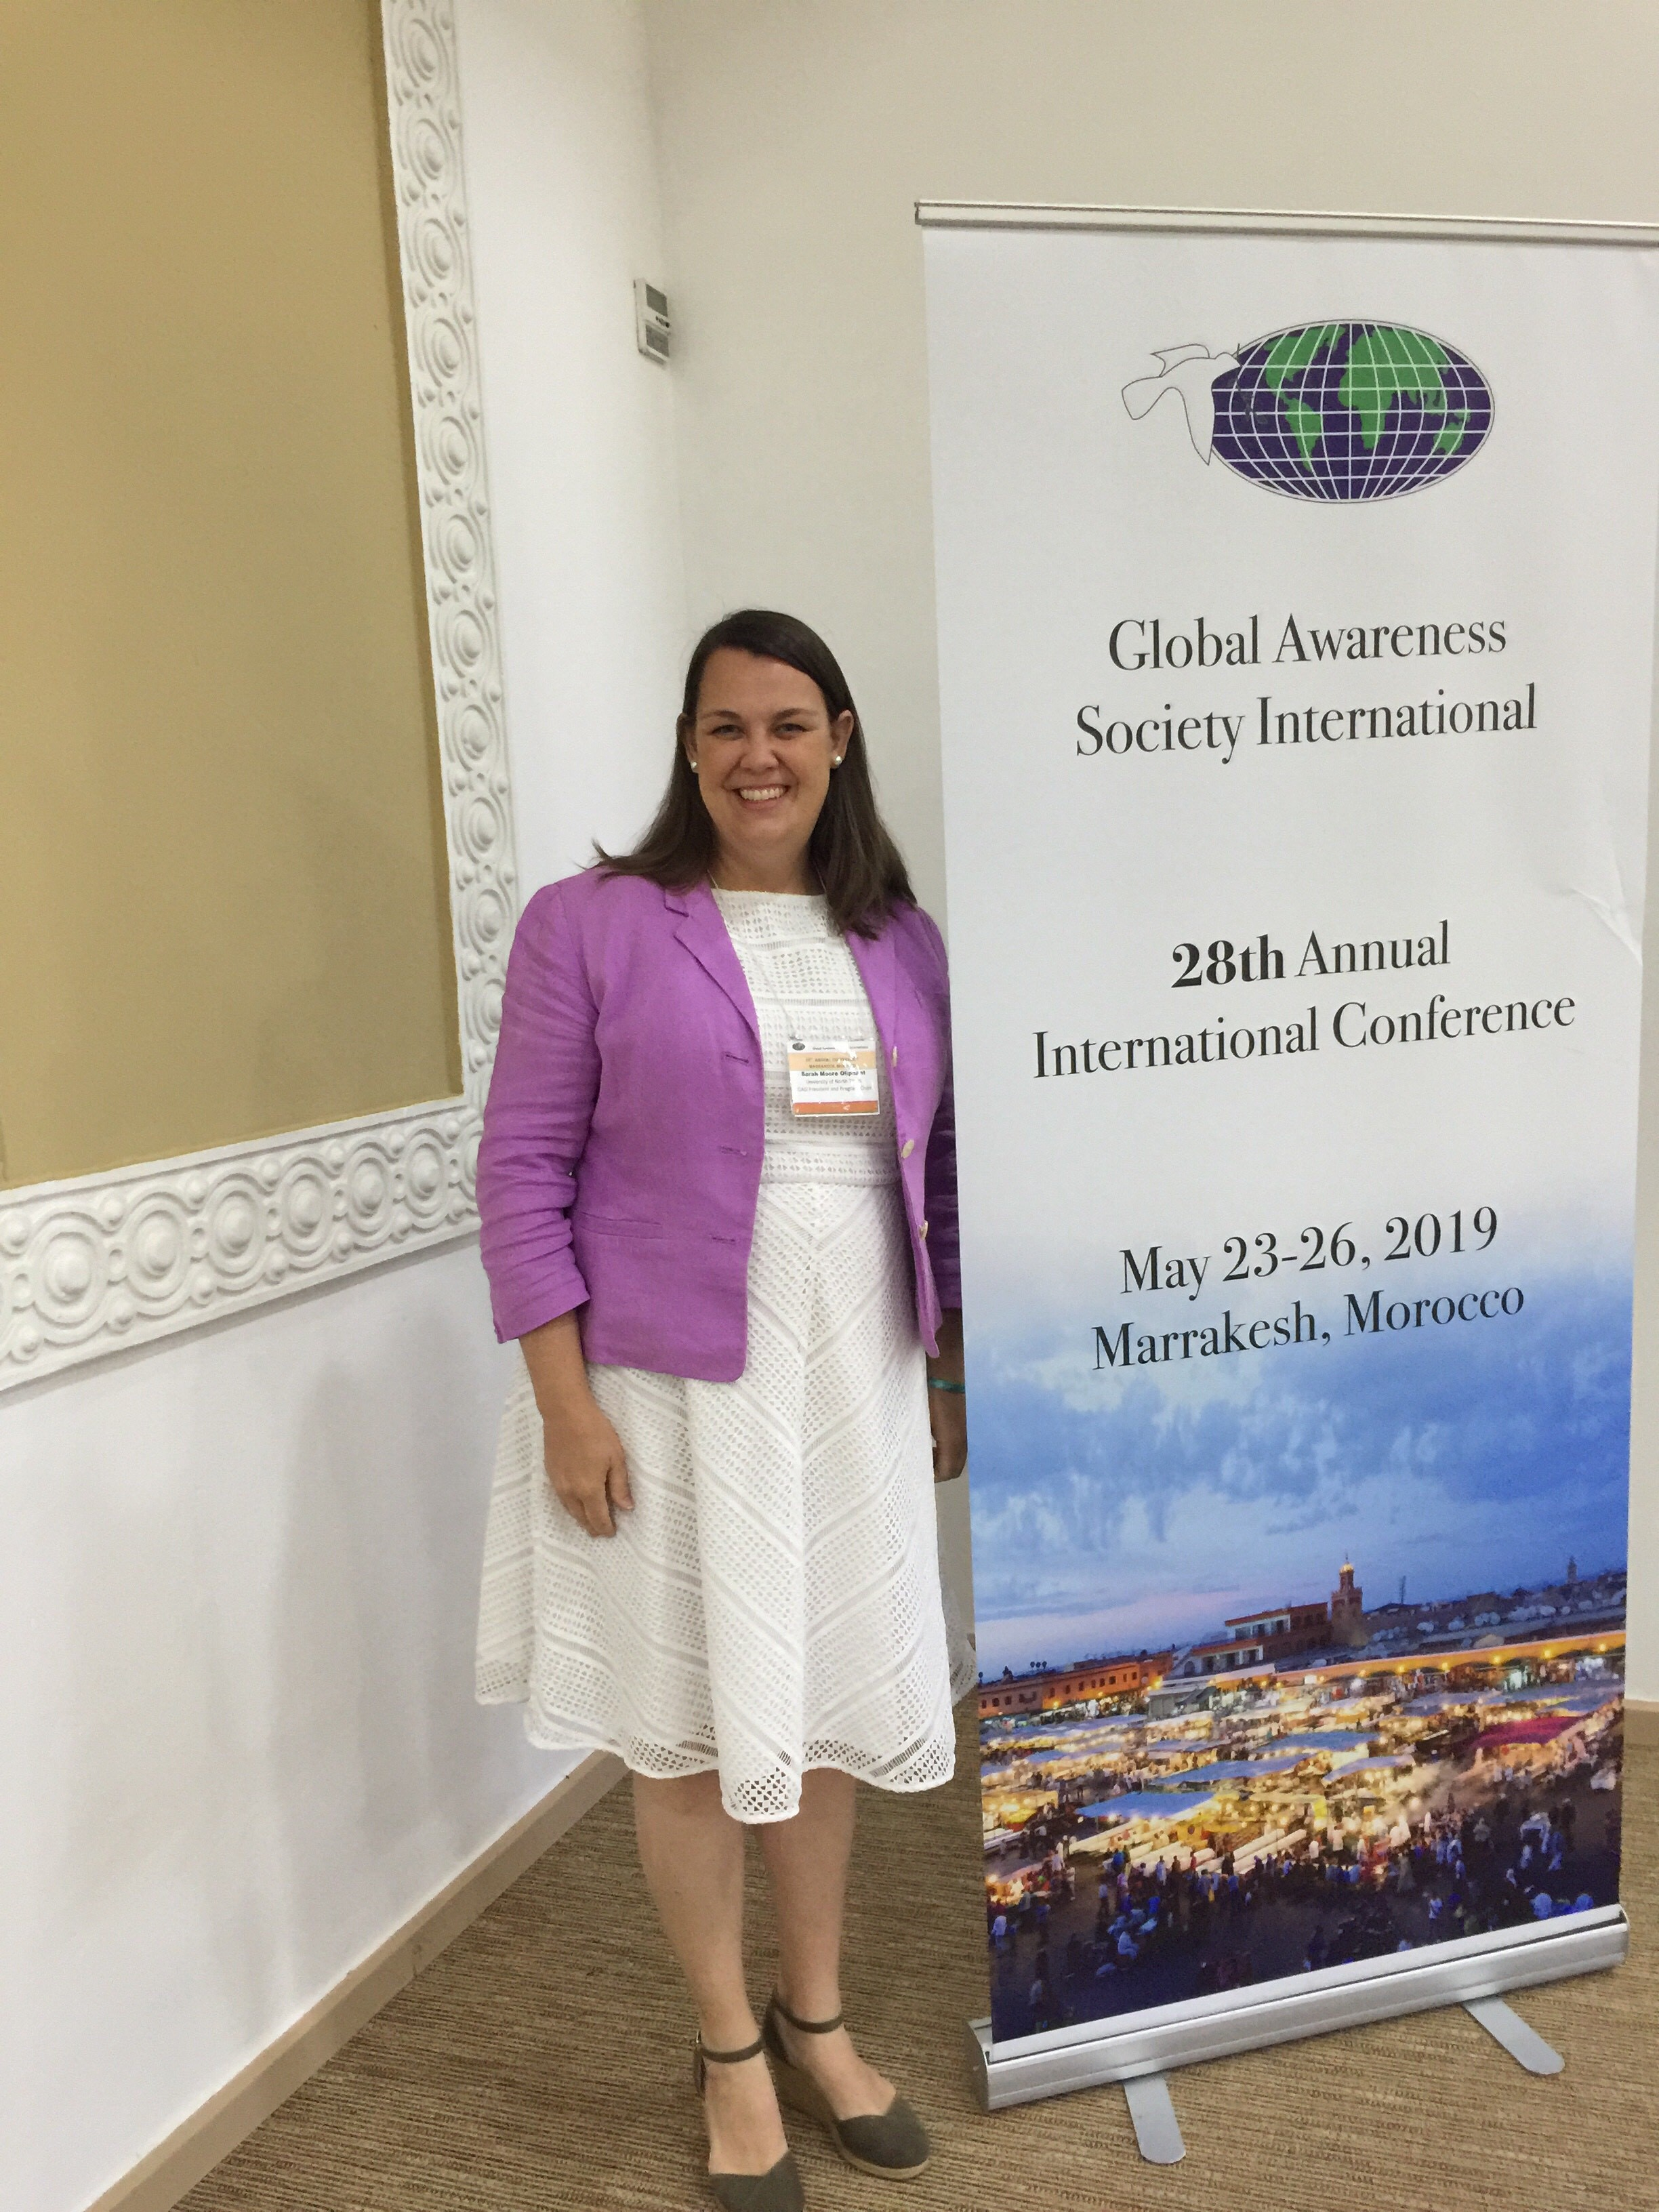 Dr. Sarah Moore Oliphant, President and Conference Chair of the Global Awareness Society International 28th Annual Conference in Marrakech, Morocco.